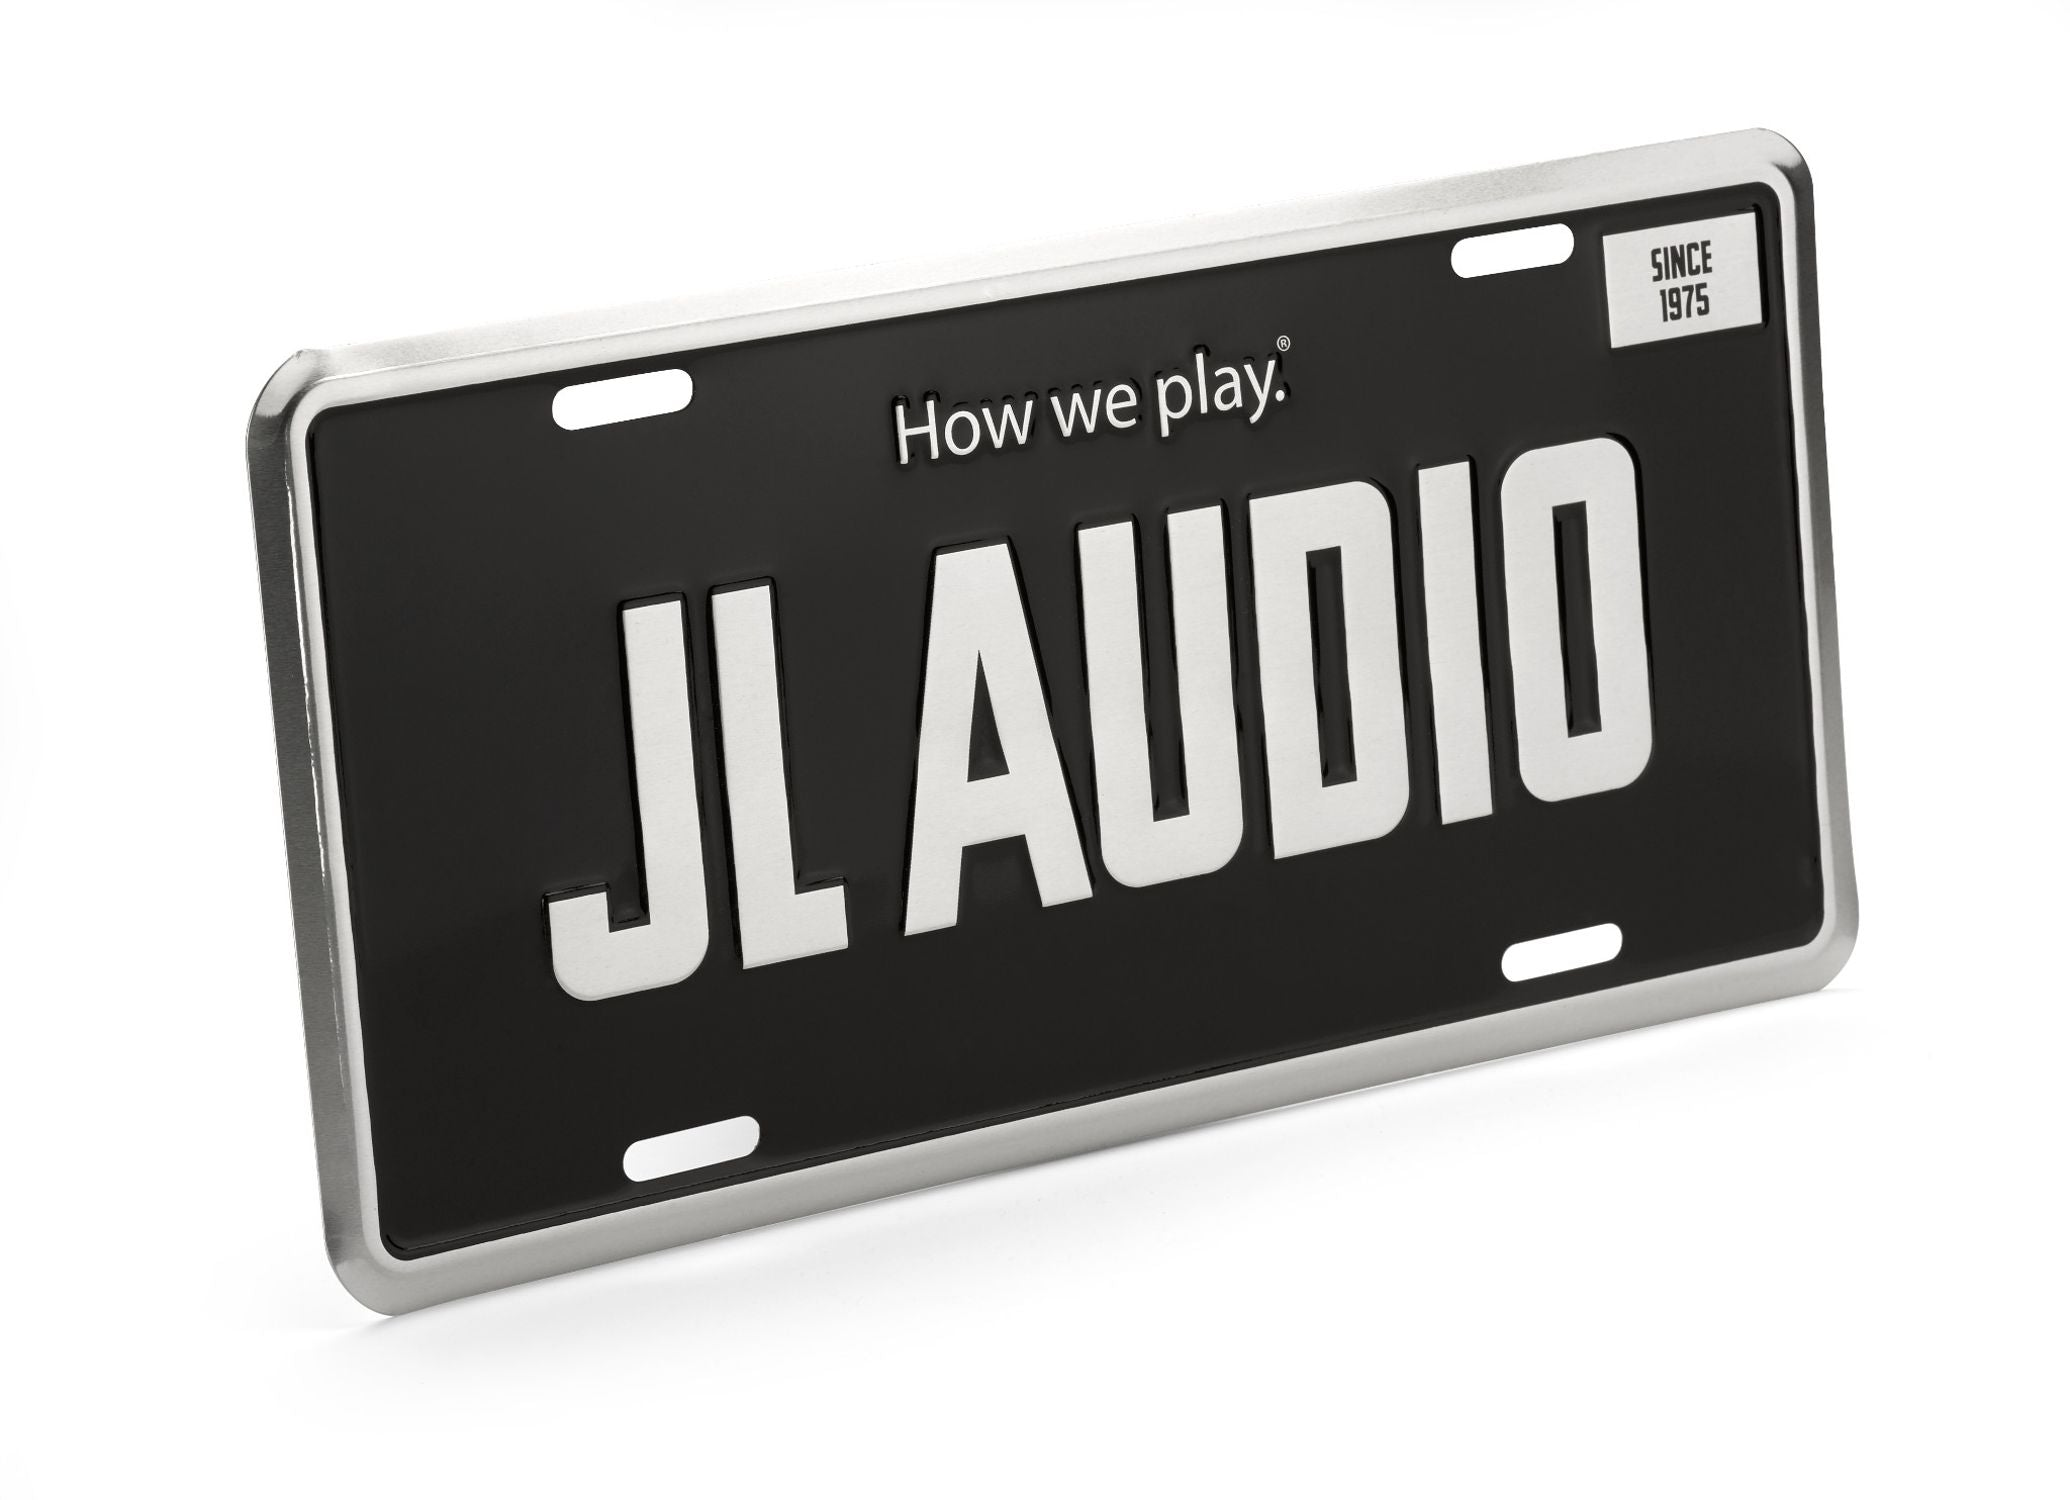 Black JL Audio License Plate